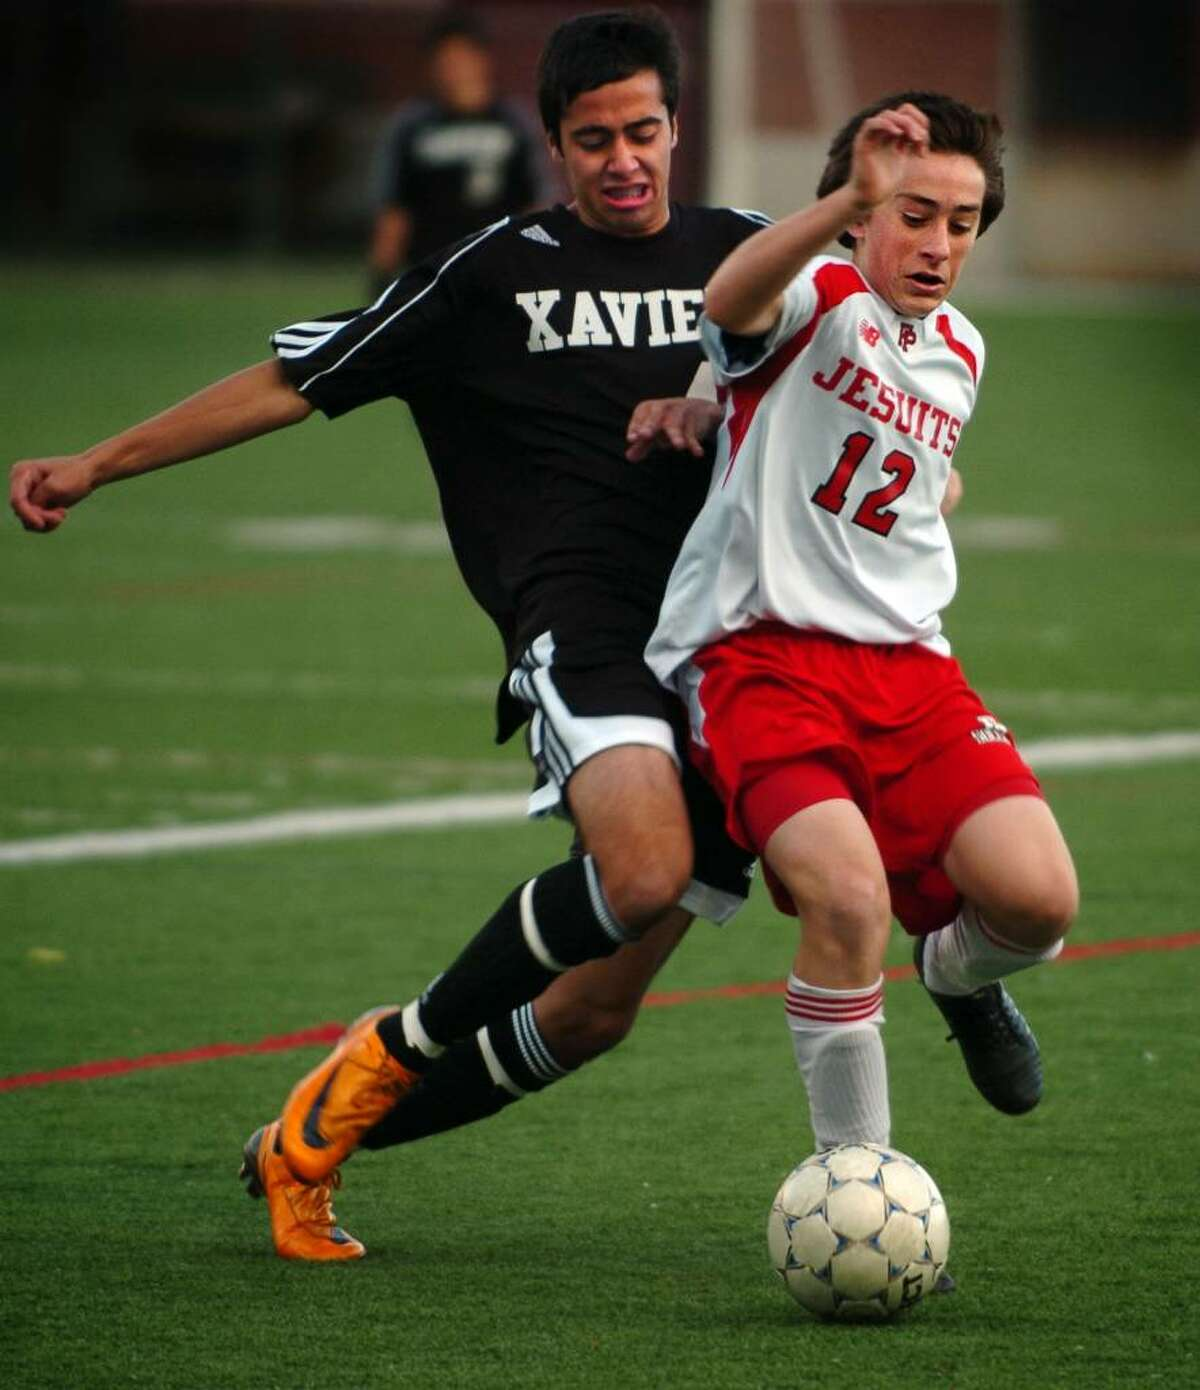 Fairfield Prep's David Bruton and Xavier's Fabricio Liseo chase down the ball during the first half of Wednesday's game at Fairfield University's Alumni Field.